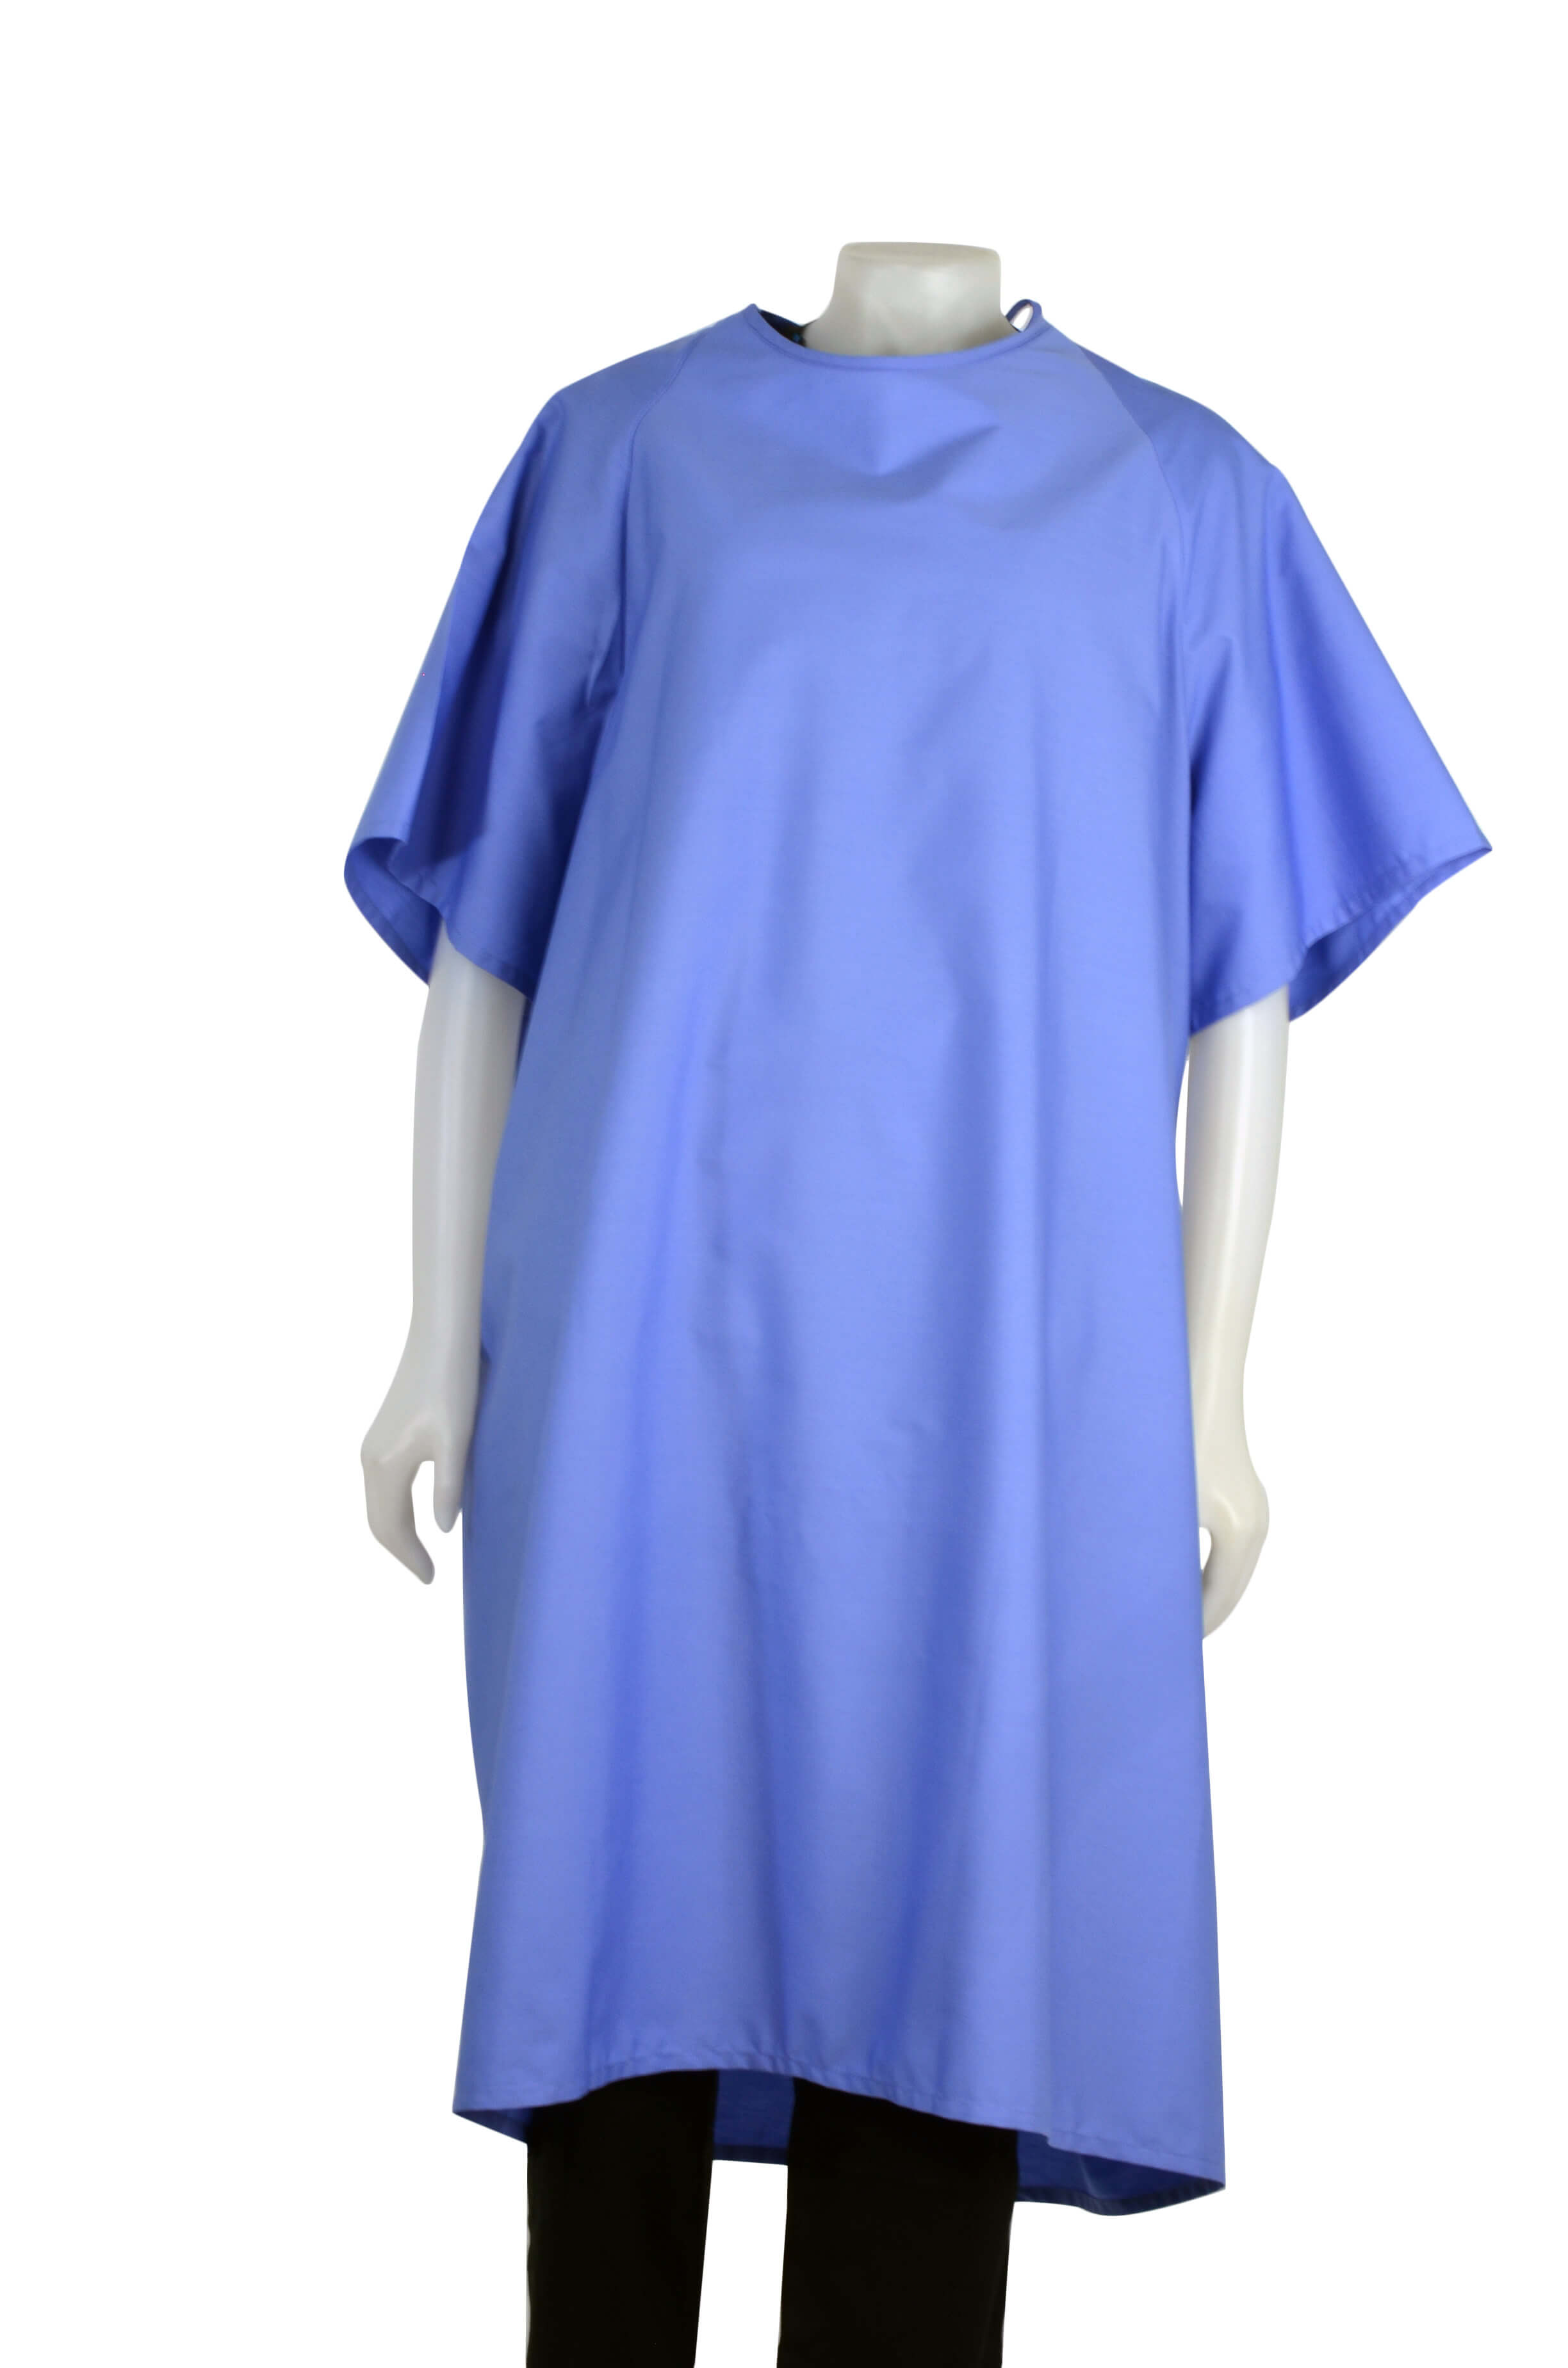 PatientGown-SS02